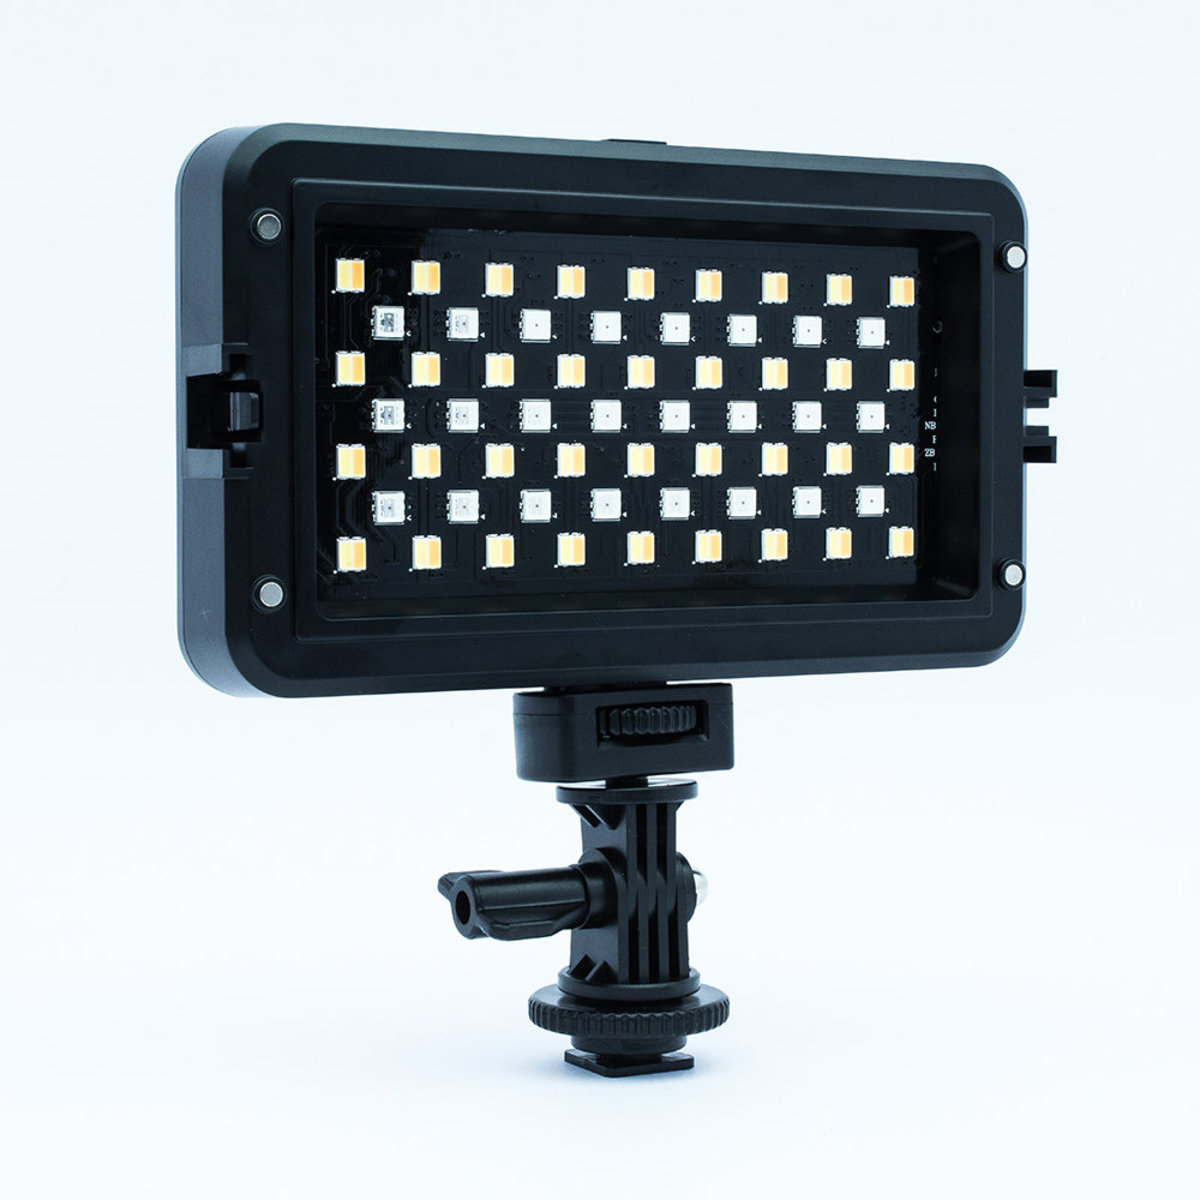 Viltrox RB-10 RGB LED 補光燈